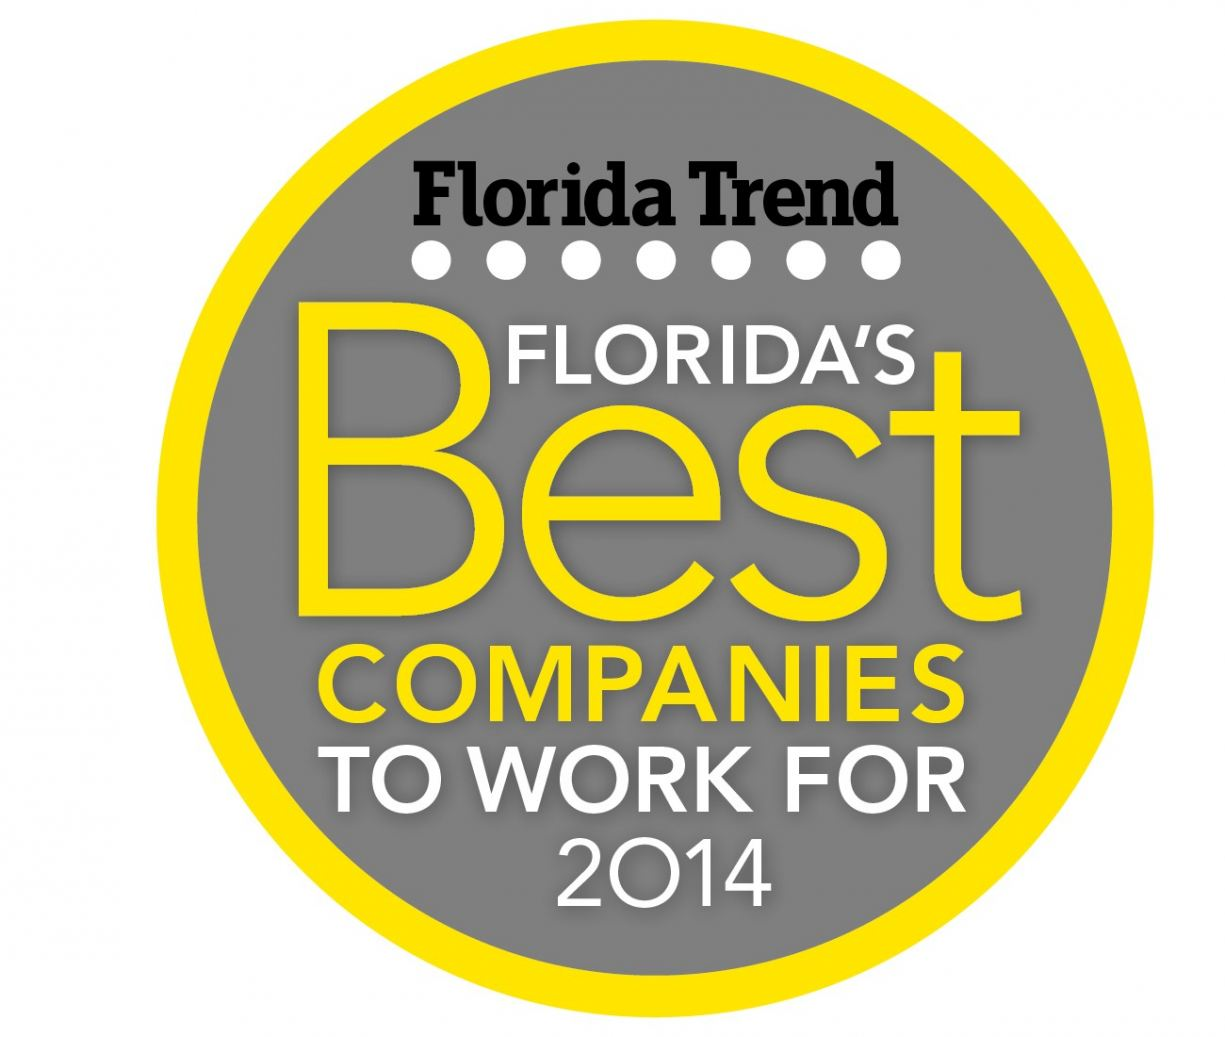 Florida Trend Best Companies to Work For 2014